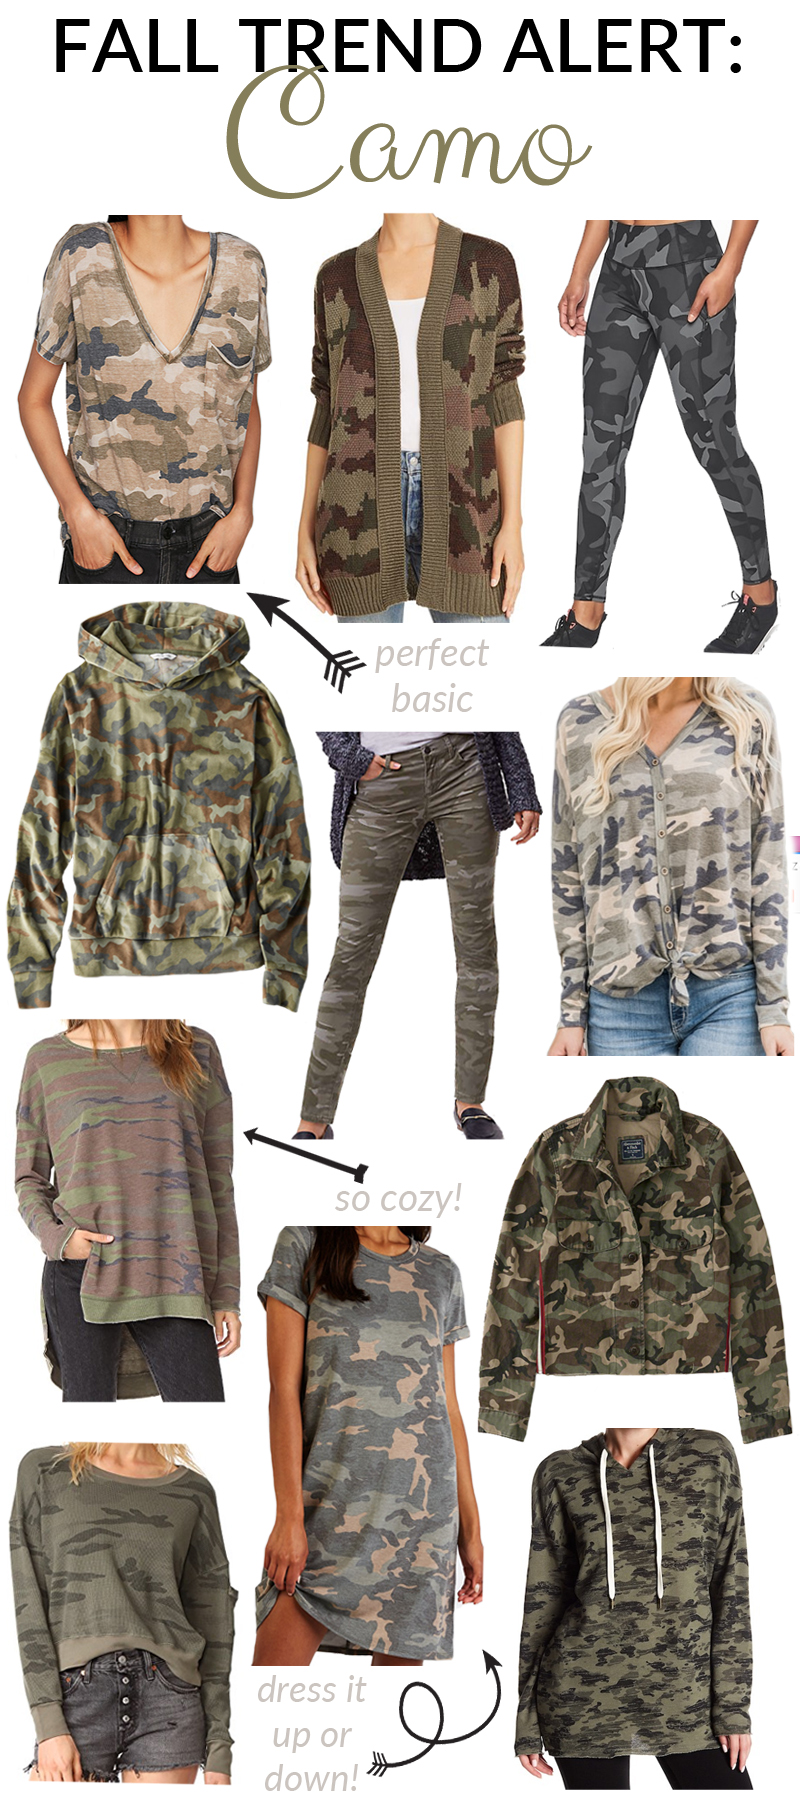 Fall Trend Alert – 11 Camo Fashion Must-Haves You Need this Season